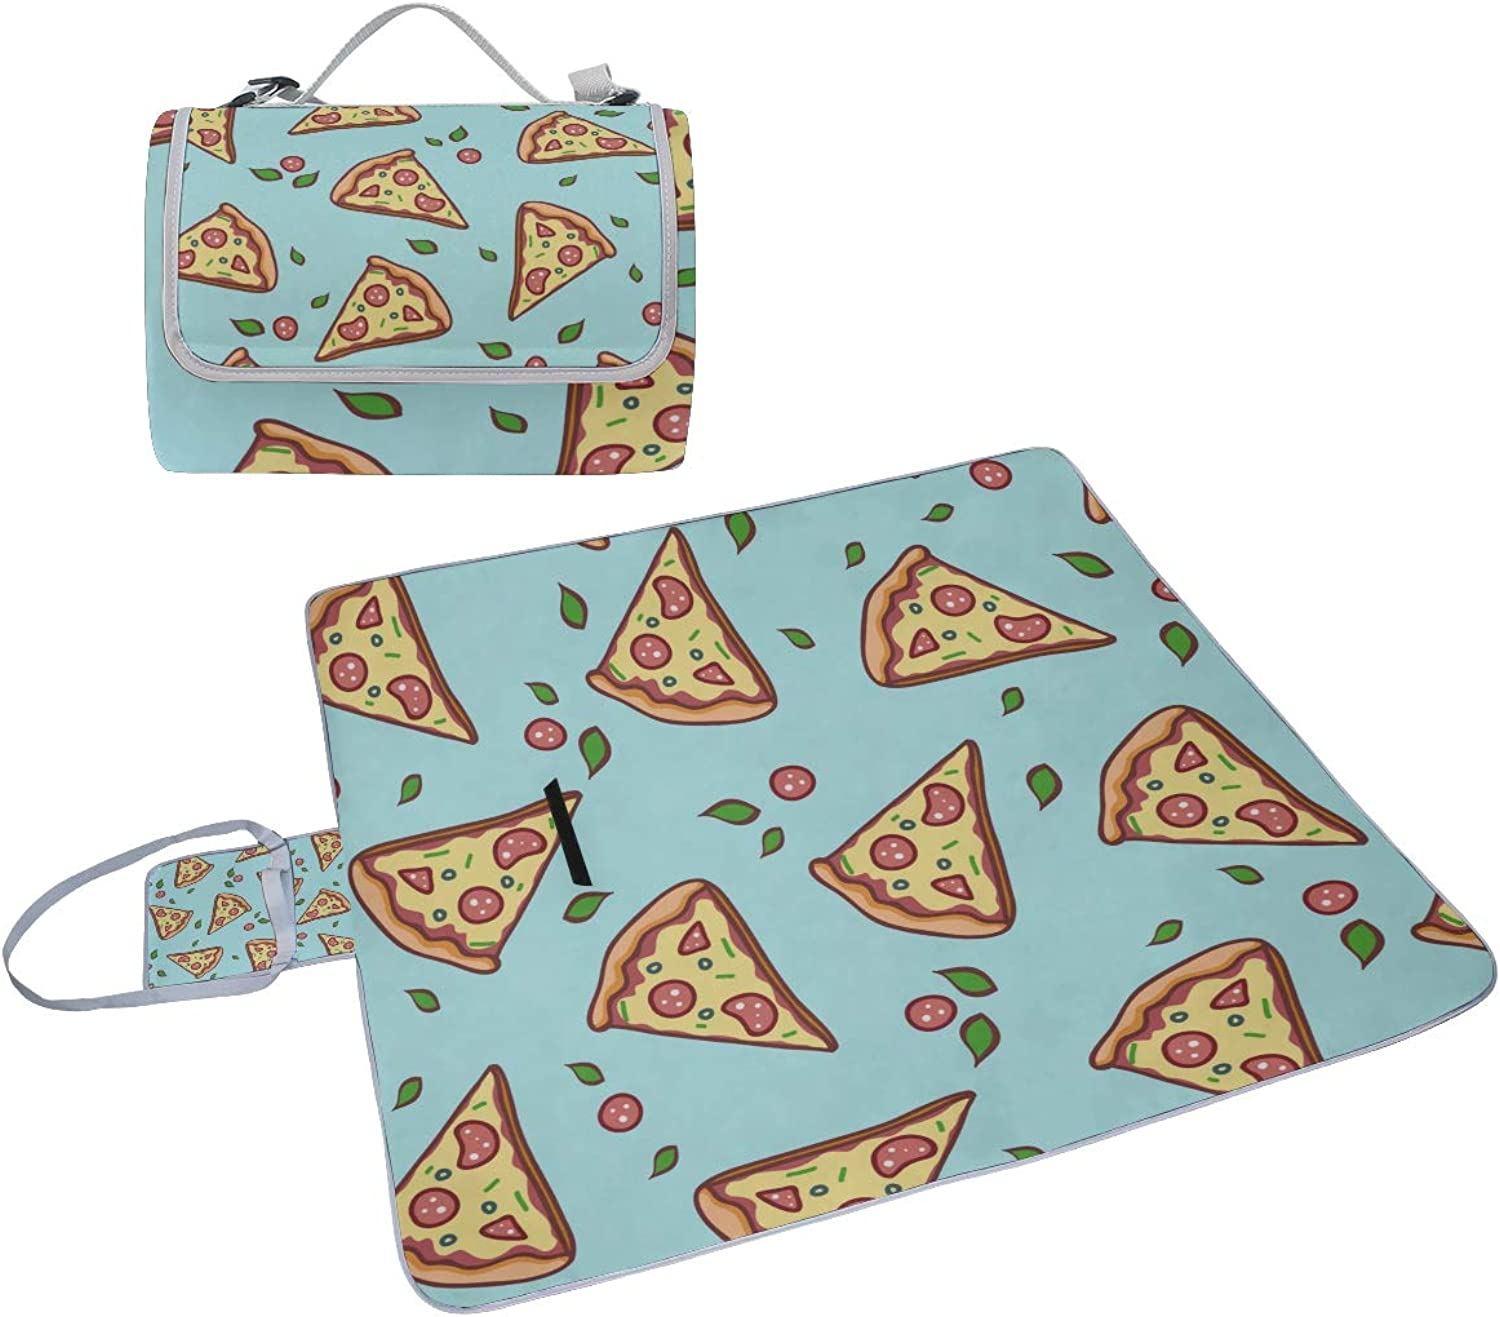 Family Picnic Blanket Handy Tote Pizza Fast Food Gourmet Design Painting Creative Single Side Printing Foldable Sandproof Waterproof Camping Mat for Outdoor Beach Hiking Grass Travel Outings